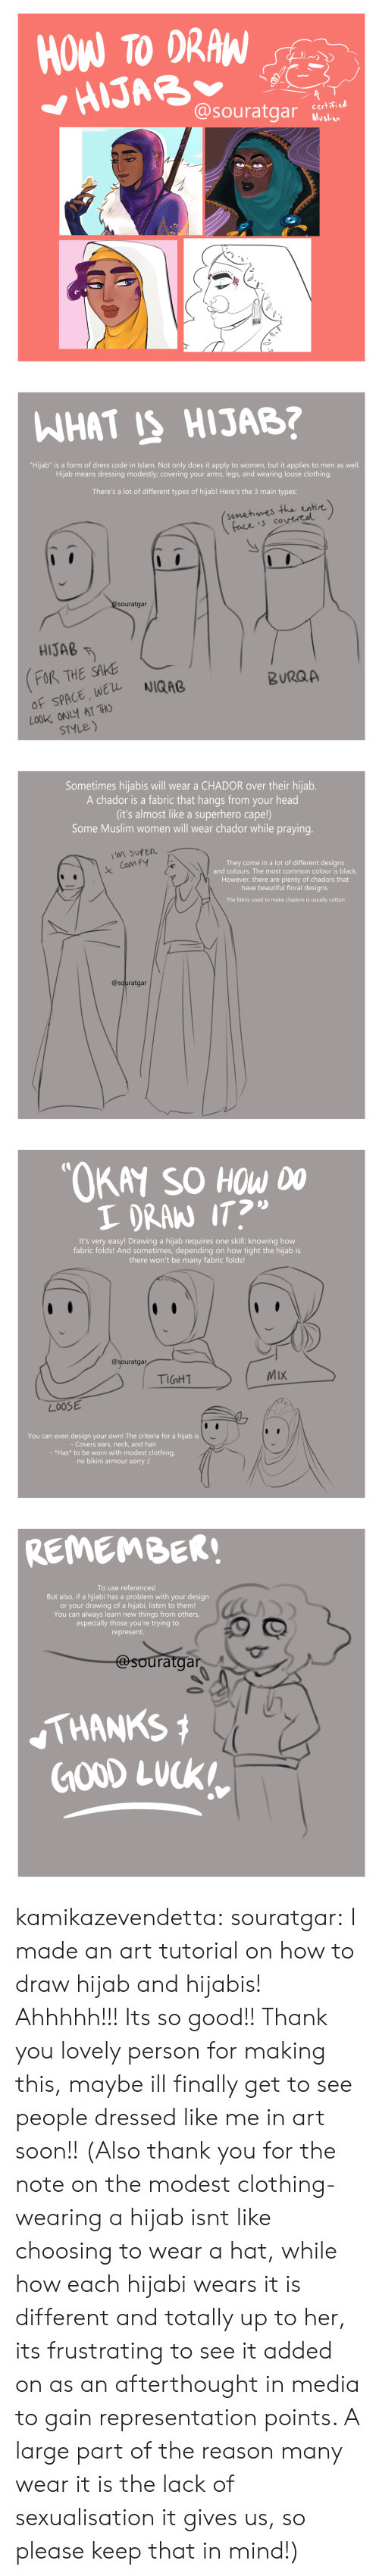 "Beautiful, Head, and Muslim: HOW TO DRAW  HIJAB  @souratgar  certified  Muslim   WHAT IS HIJAB?  ""Hijab"" is a form of dress code in Islam. Not only does it apply to women, but it applies to men as well.  Hijab means dressing modestly; covering your arms, legs, and wearing loose clothing.  There's a lot of different types of hijab! Here's the 3 main types:  (somehimes the entire)  face is covereel  @Souratgar  HIJAB  FOR THE SAKE  OF SPACE, WEL  LOOK ONLY AT THO  STYLE)  NIQAB  BURQA   Sometimes hijabis will wear a CHADOR over their hijab.  A chador is a fabric that hangs from your head  (it's almost like a superhero cape!)  Some Muslim women will wear chador while praying.  M SUPER  They come in a lot of different designs  and colours. The most common colour is black.  Com FY  However, there are plenty of chadors that  have beautiful floral designs.  The fabric used to make chadors is usually cotton.  @souratgar   ""OKAY SO HOW DO  I DRAN IT?  It's very easy! Drawing a hijab requi res one skill: knowing how  fabric folds! And sometimes, depending on how tight the hijab is  there won't be many fabric folds!  @souratgar  MIX  TIGHT  LOOSE  You can even design your own! The criteria for a hijab is  - Covers ears, neck, and hair  - *Has* to be worn with modest clothing,  no bikini armour sorry :(   REMEMBER!  To use references!  But also, if a hijiabi has a problem with your design  or your drawing of a hijabi, listen to them!  You can always learn new things from others,  especially those you're trying to  represent.  @souratgar  THANKS  GOOD LUCK kamikazevendetta:  souratgar: I made an art tutorial on how to draw hijab and hijabis! Ahhhhh!!! Its so good!! Thank you lovely person for making this, maybe ill finally get to see people dressed like me in art soon!!   (Also thank you for the note on the modest clothing- wearing a hijab isnt like choosing to wear a hat, while how each hijabi wears it is different and totally up to her, its frustrating to see it added on as an afterthought in media to gain representation points. A large part of the reason many wear it is the lack of sexualisation it gives us, so please keep that in mind!)"